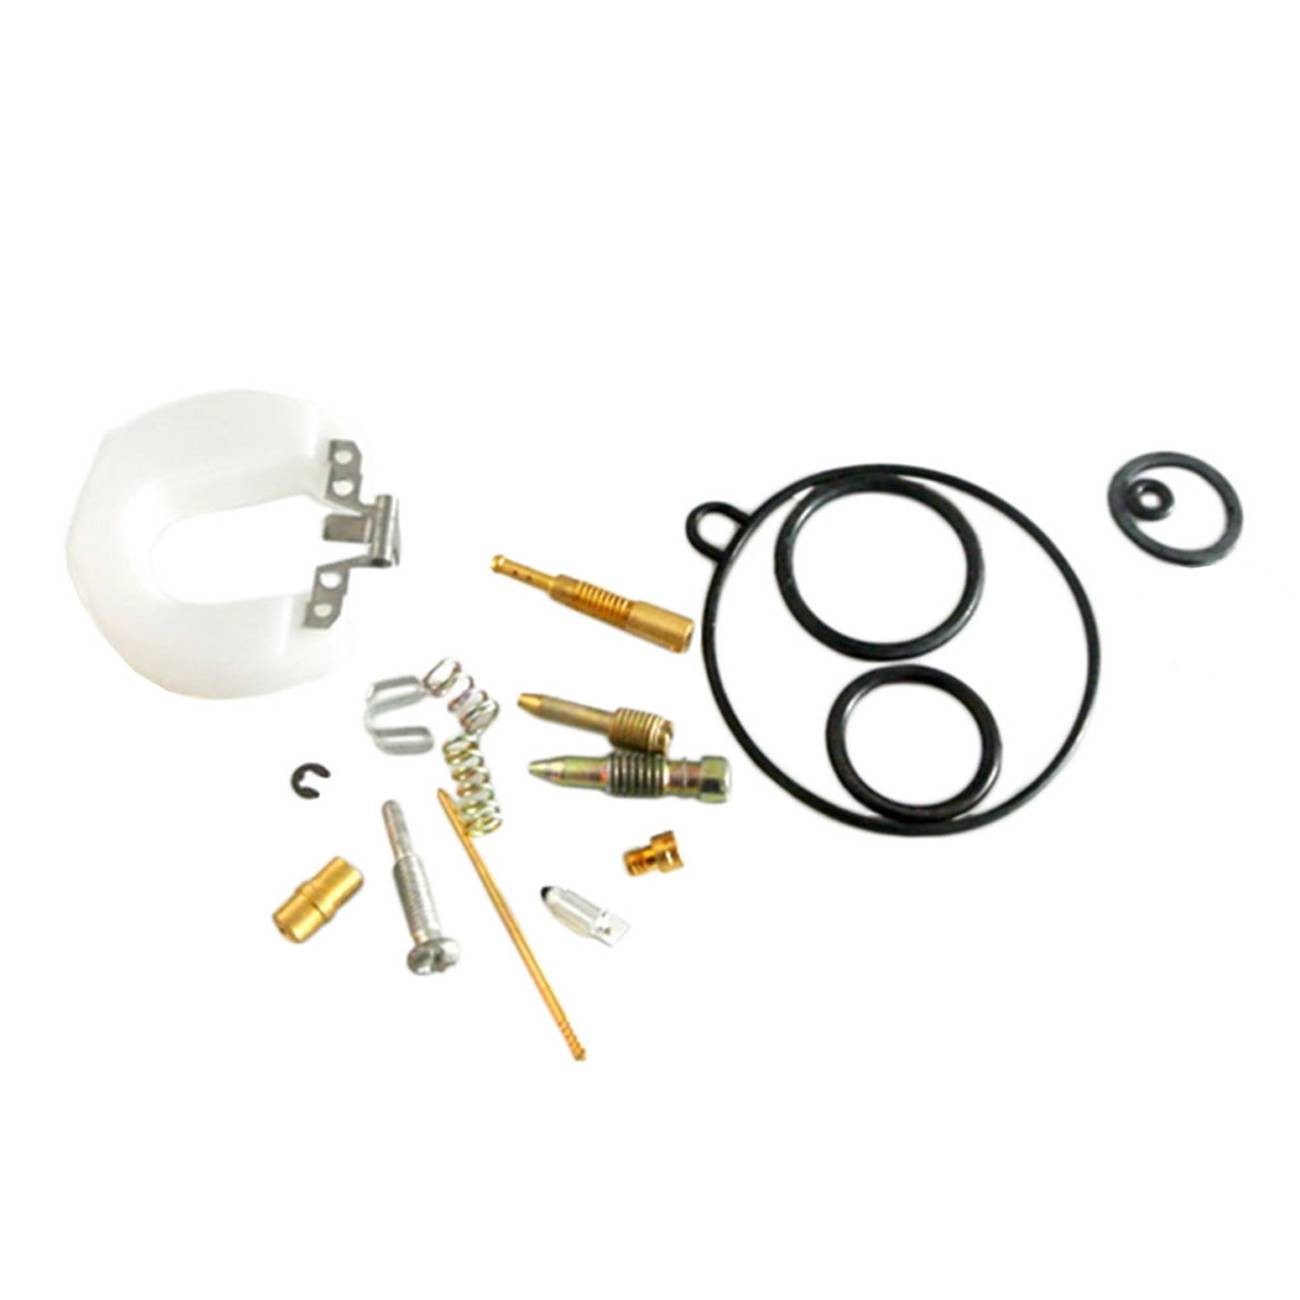 PZ19 19mm Carburetor Repair Kit for 50cc 90cc 110cc 125cc ATV Quad Pit Dirt Bike